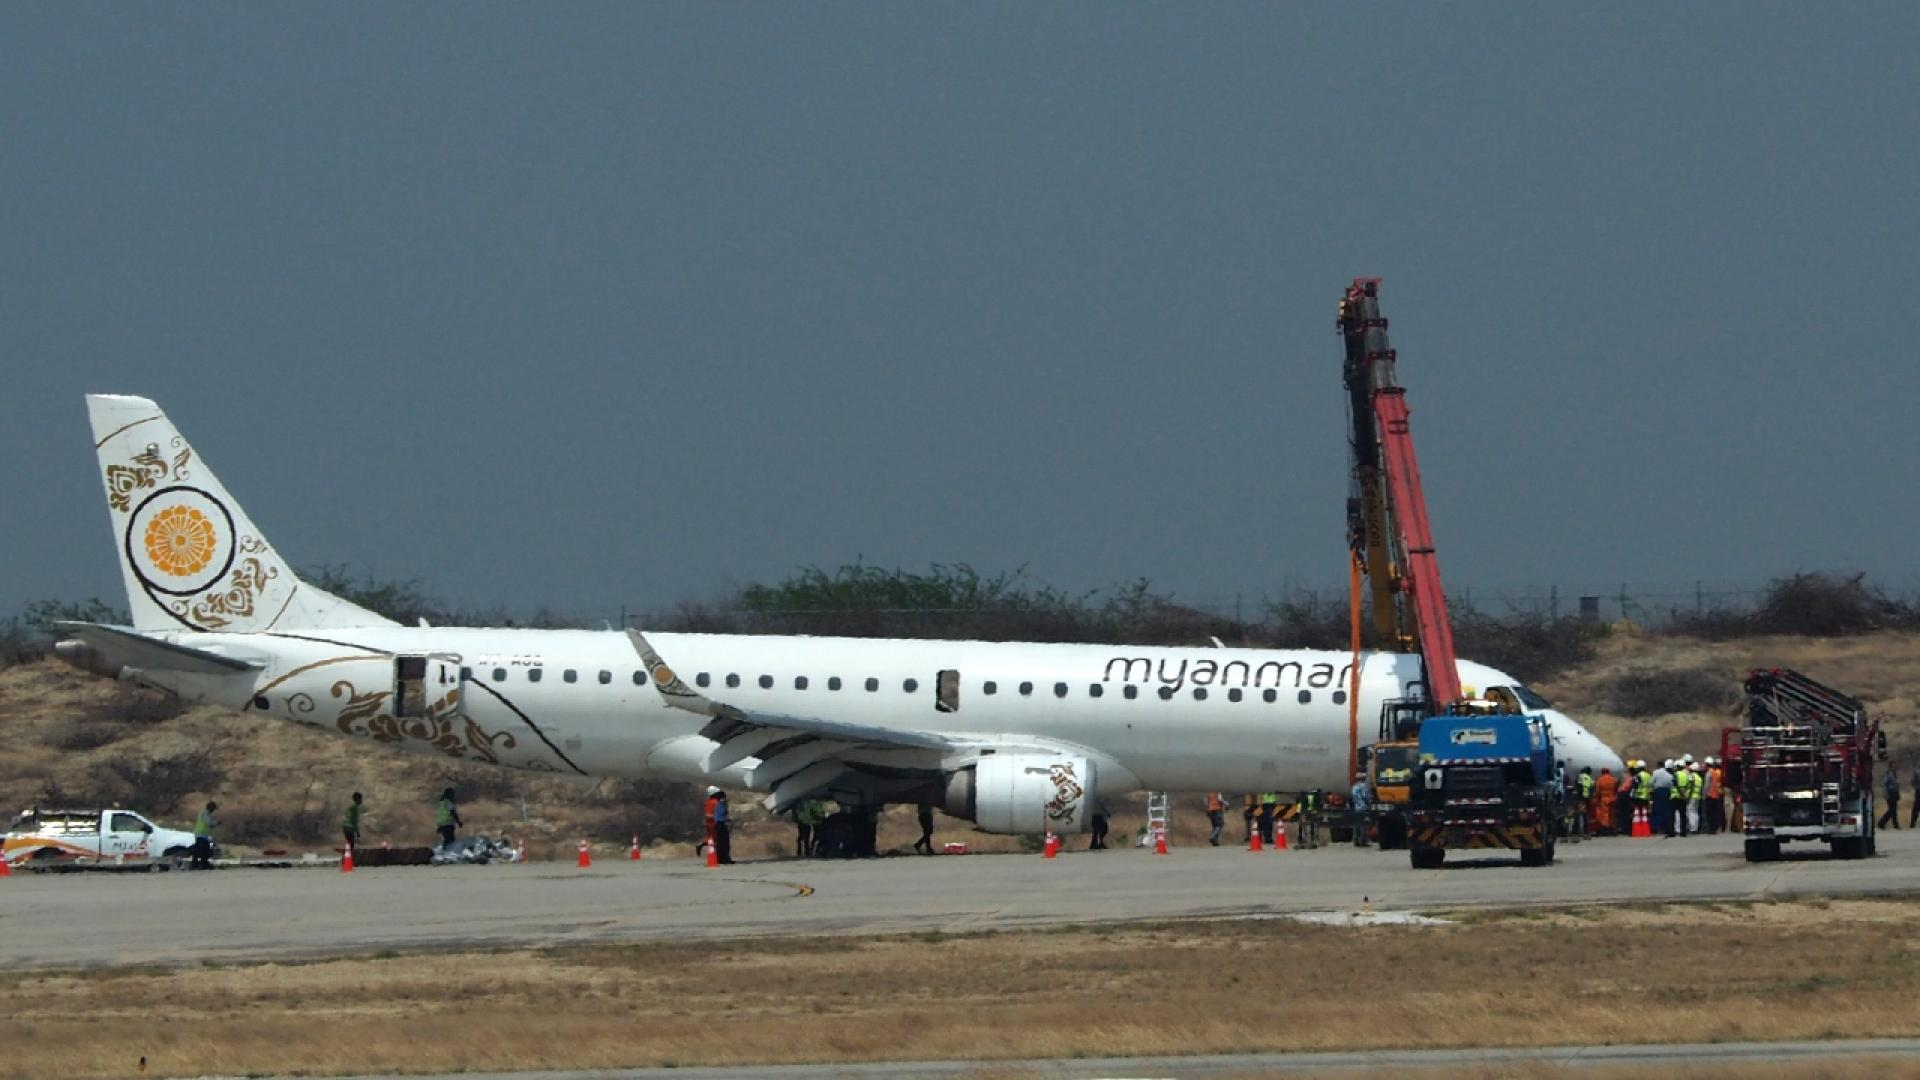 A plane made an emergency landing without any front wheels.